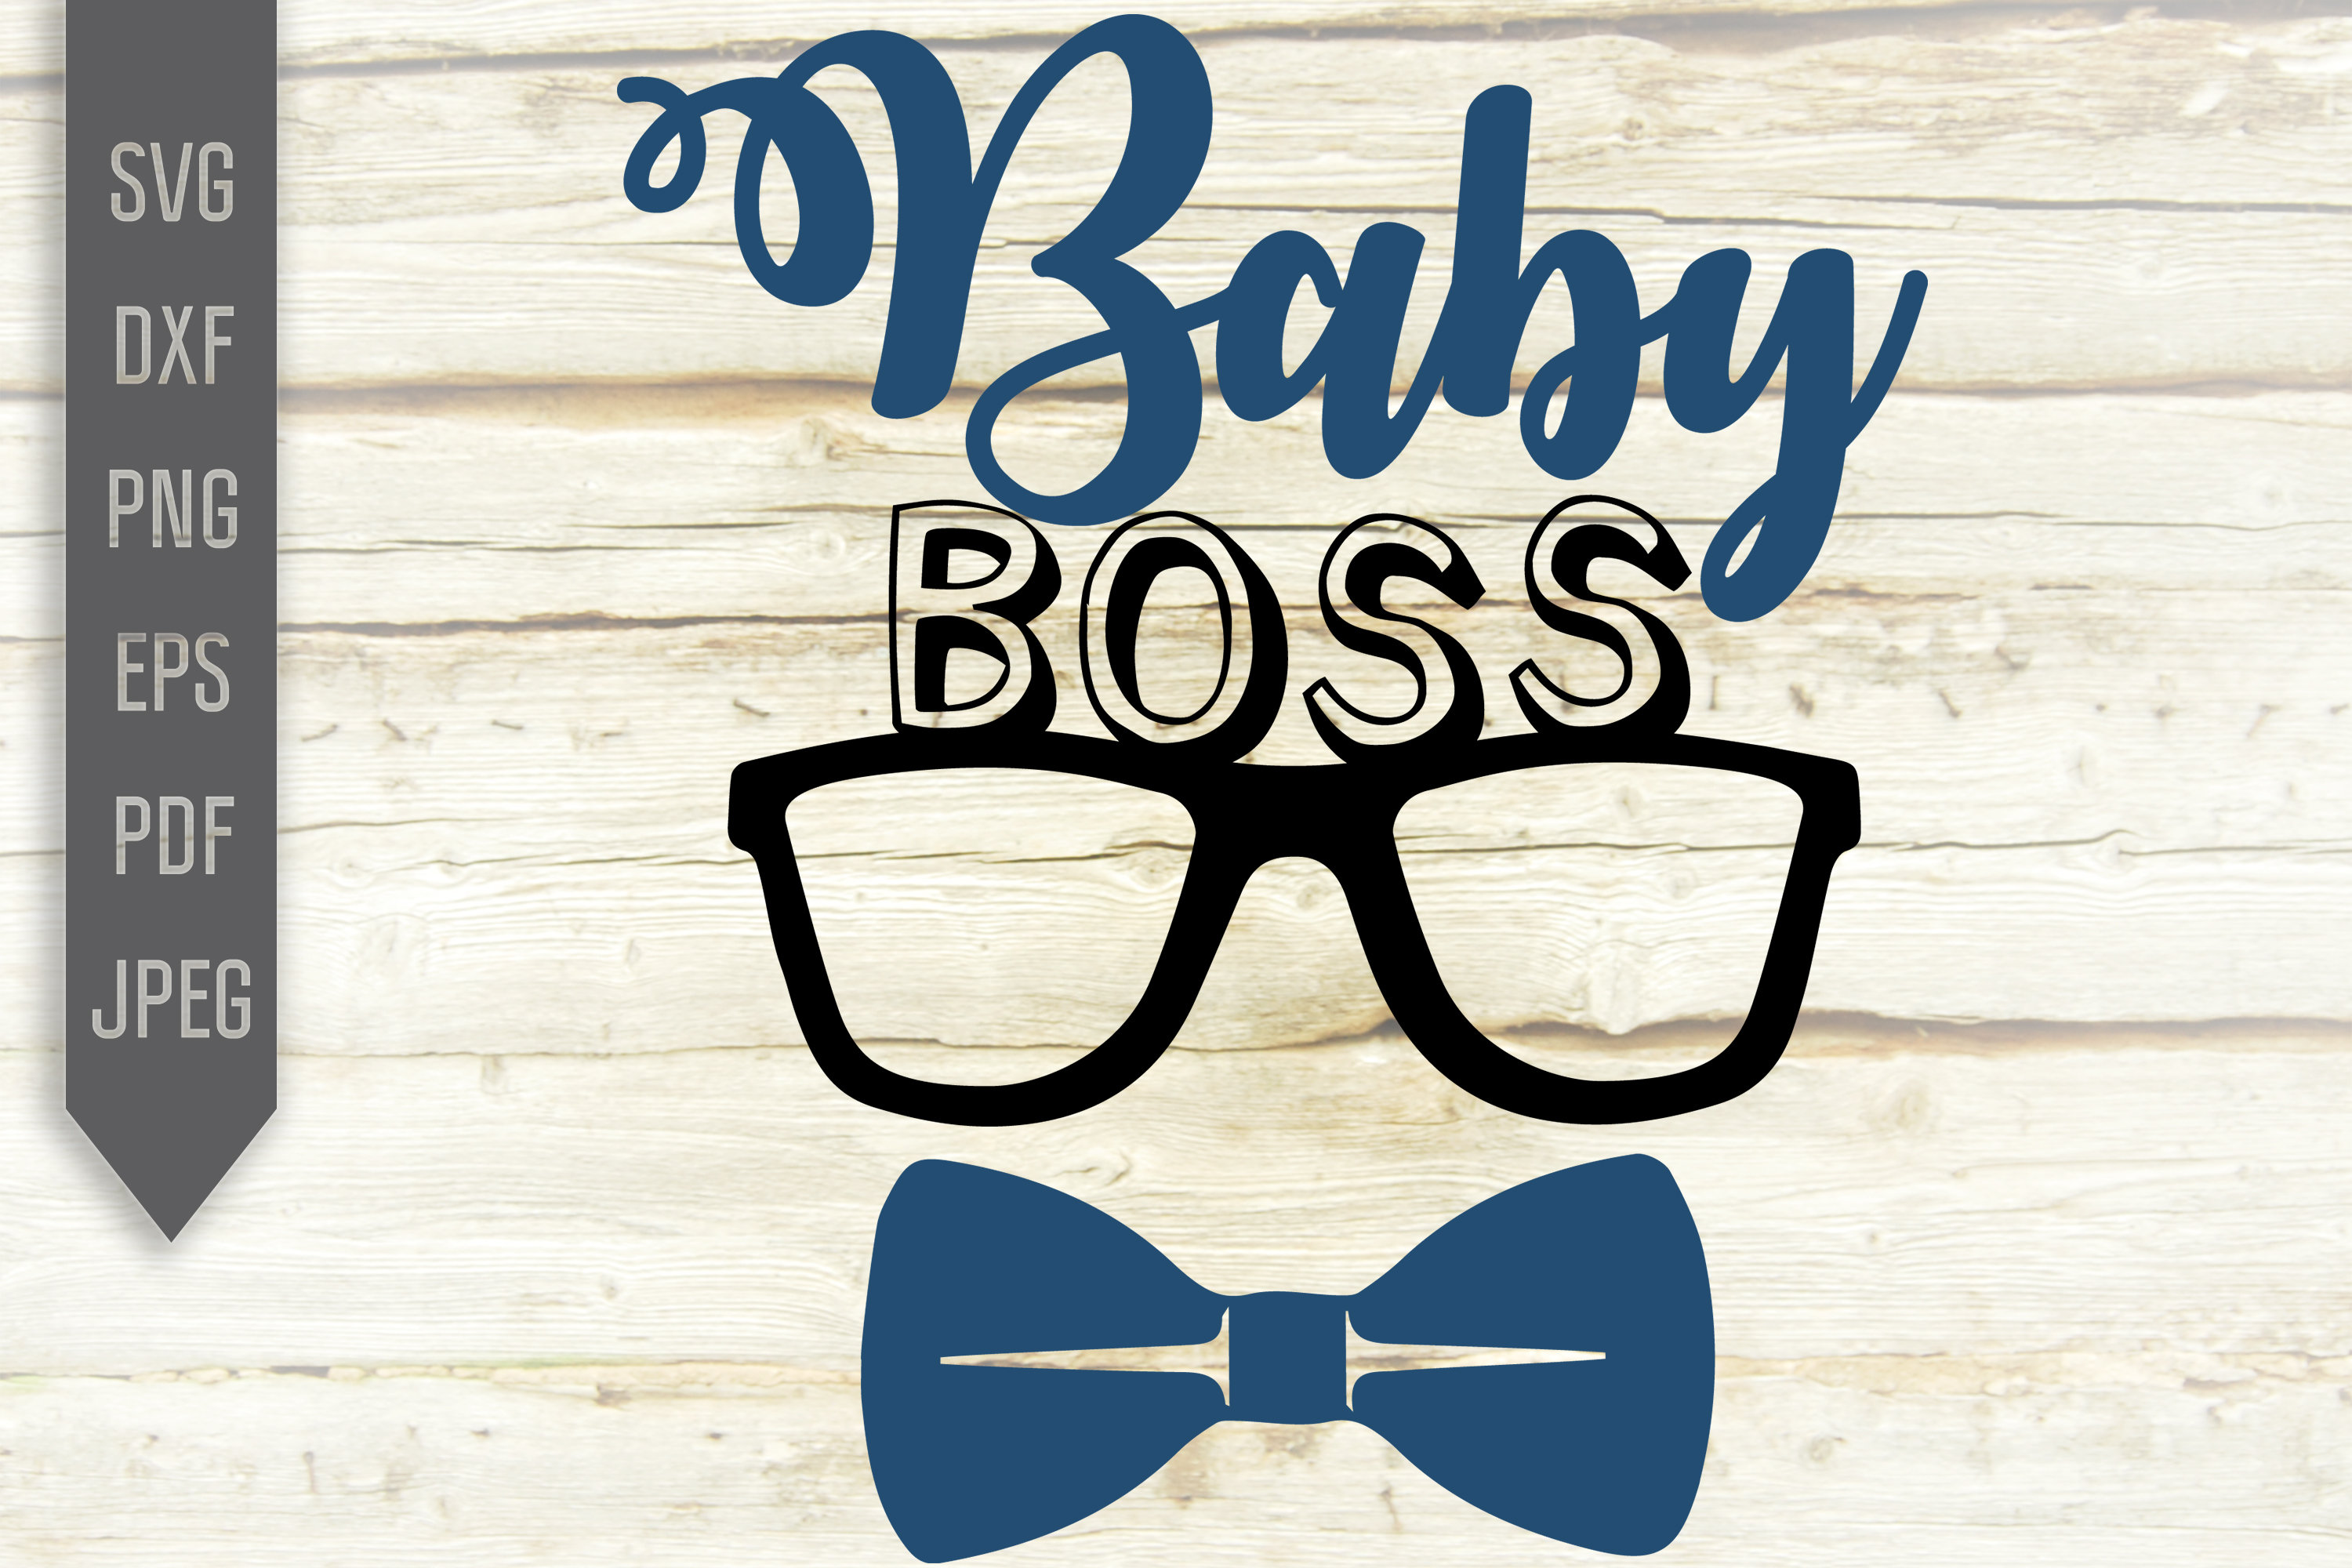 Download Free Baby Boss Little Kid Shirt Design Graphic By Svglaboratory for Cricut Explore, Silhouette and other cutting machines.